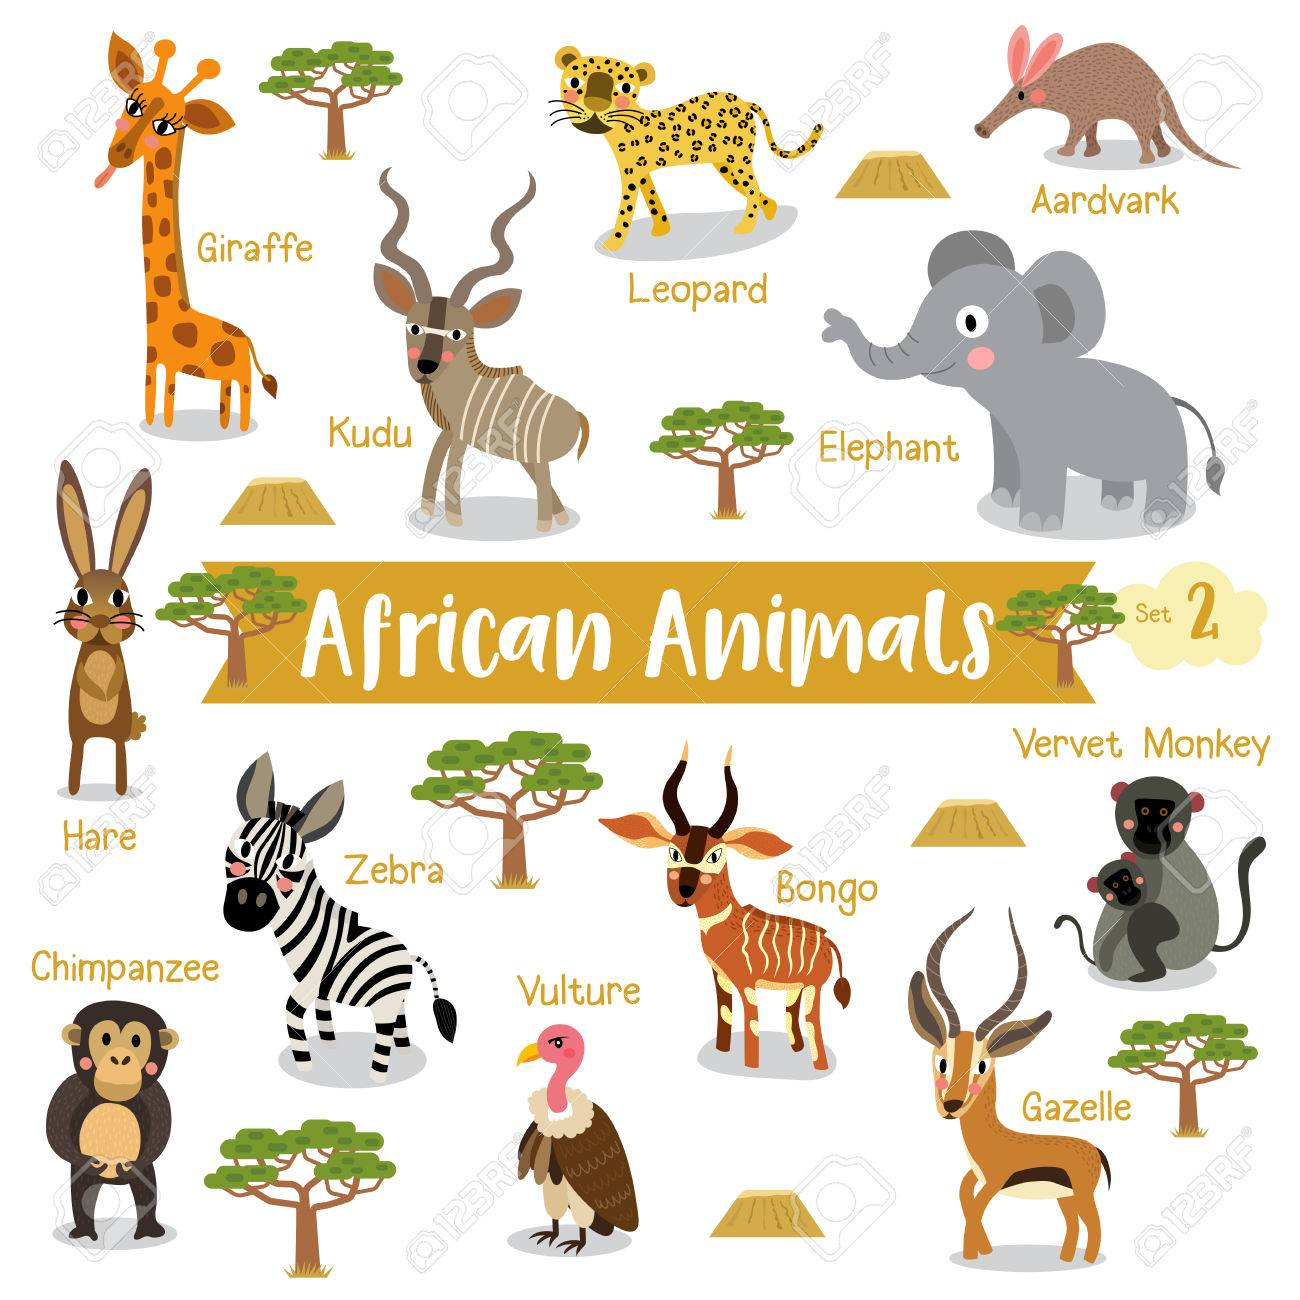 african animals cartoon on white background with animal name